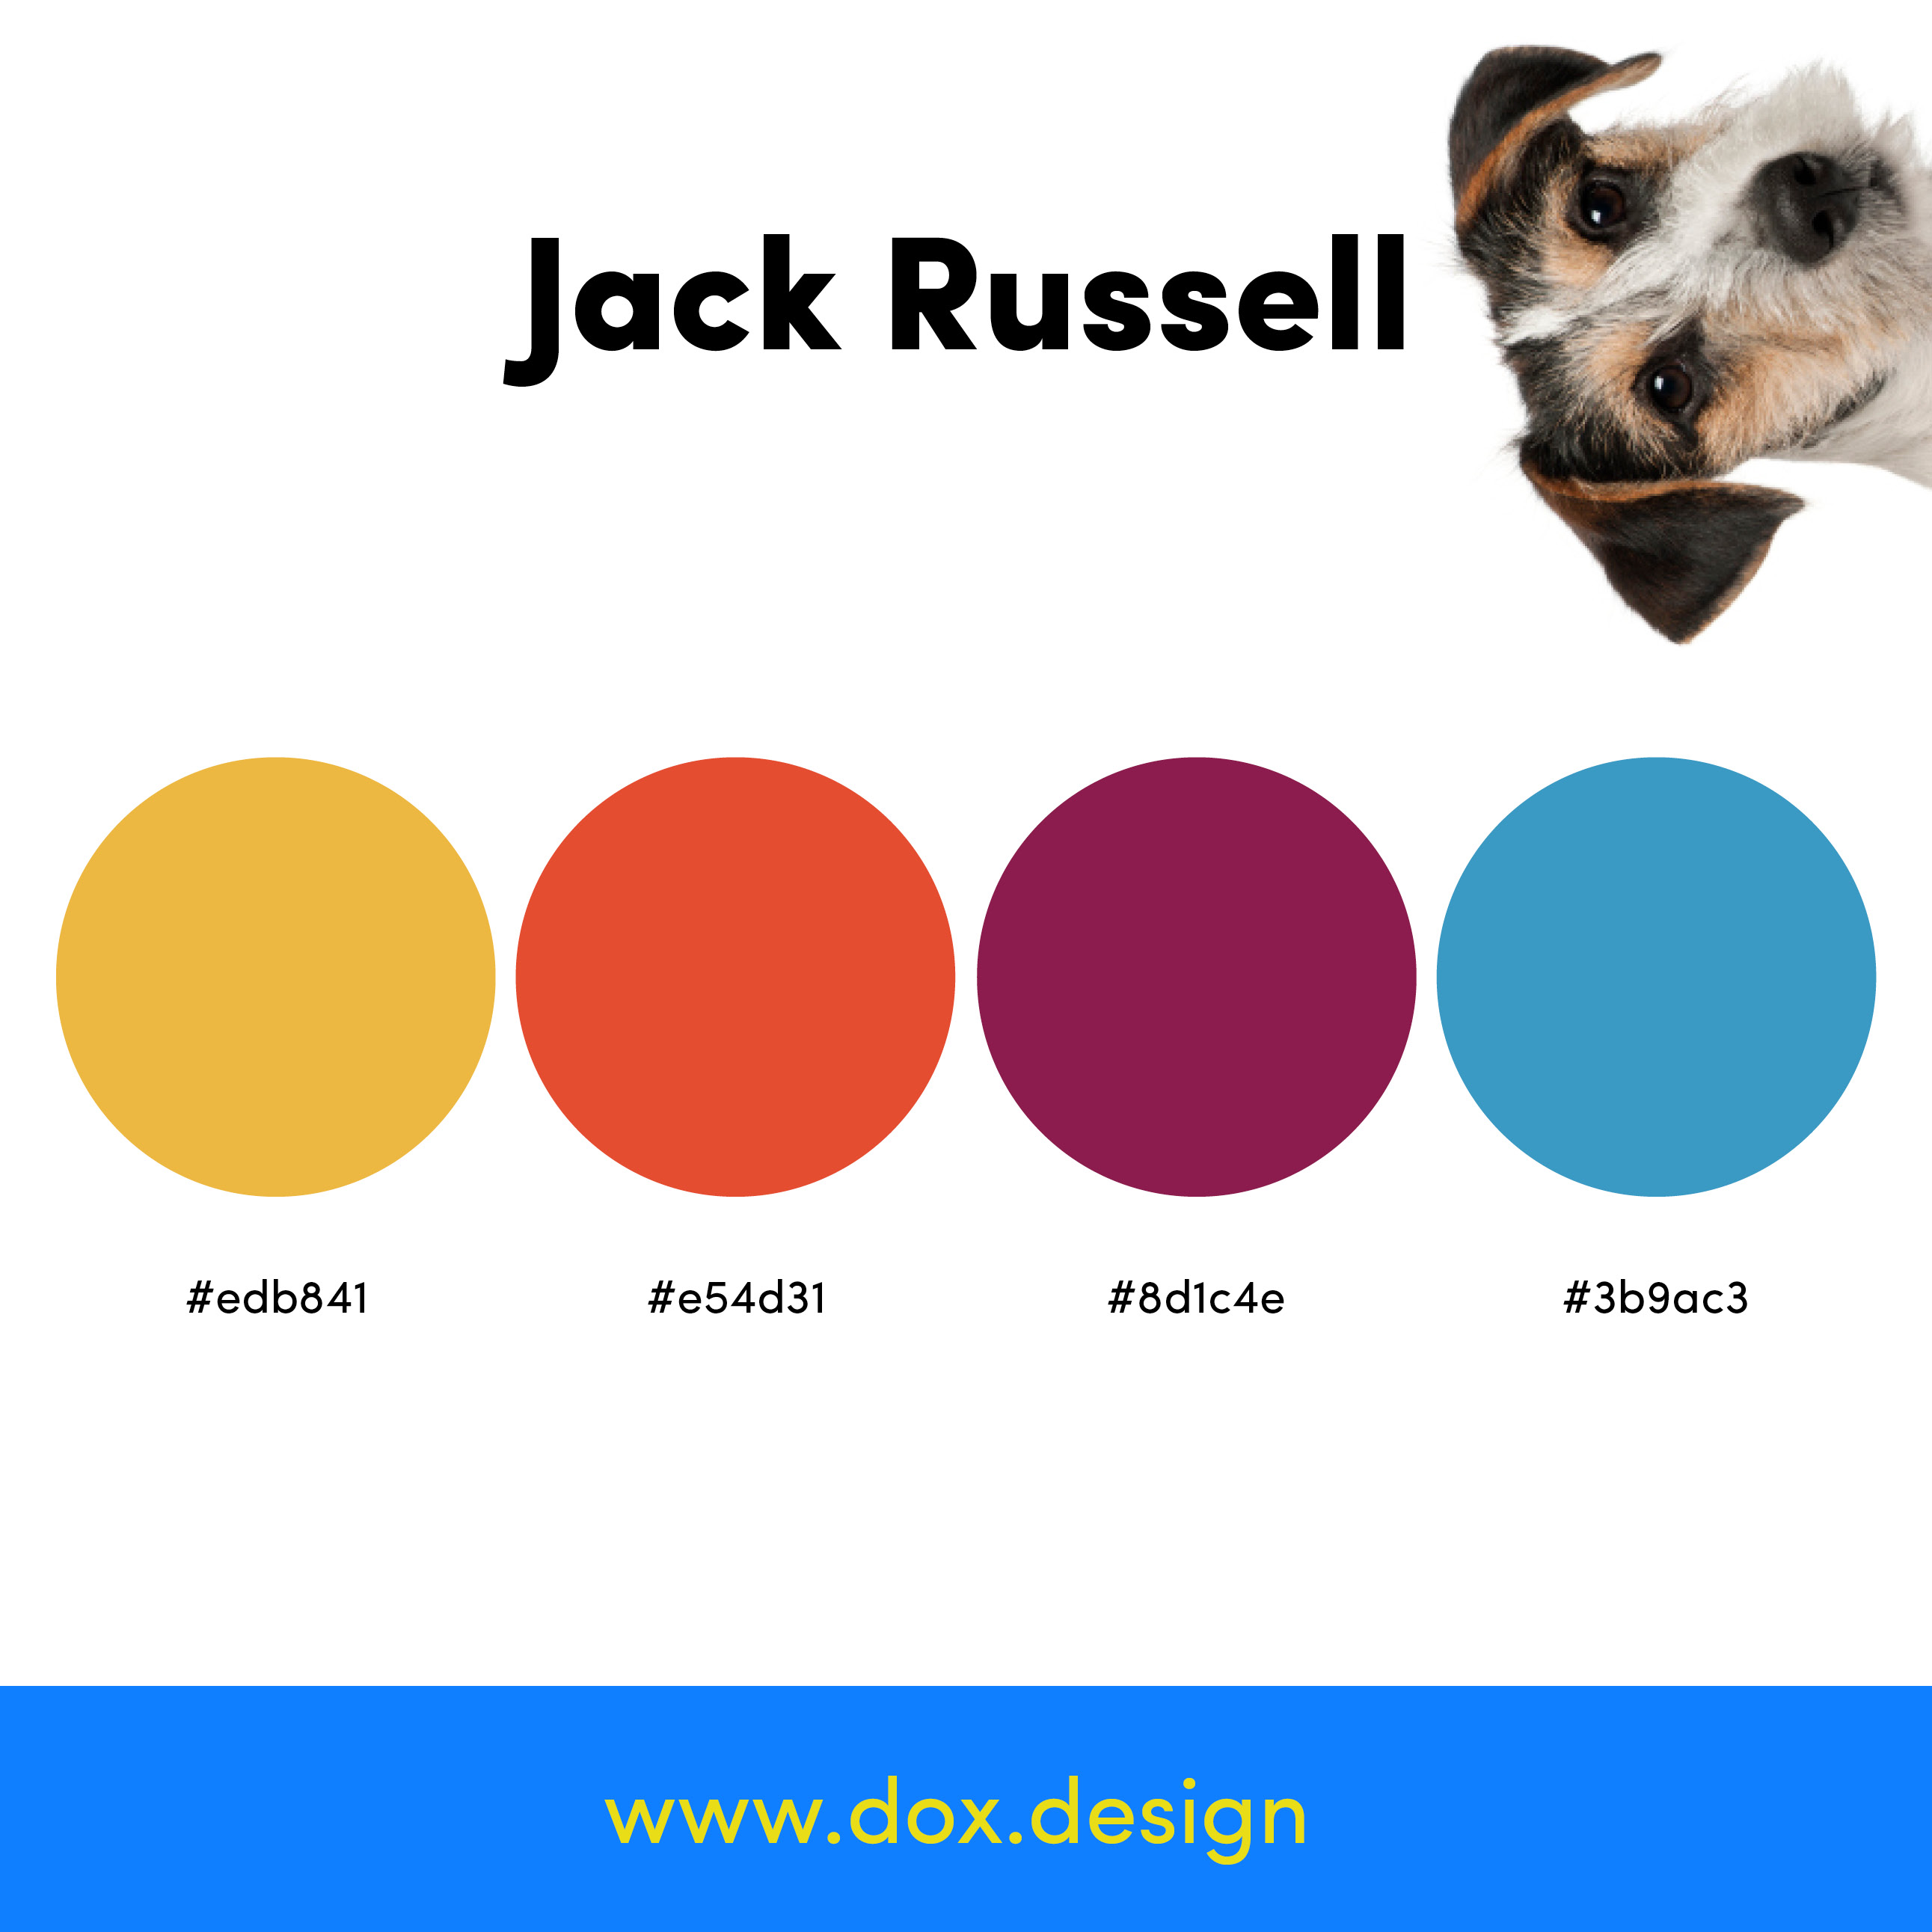 Jack Russell color palette